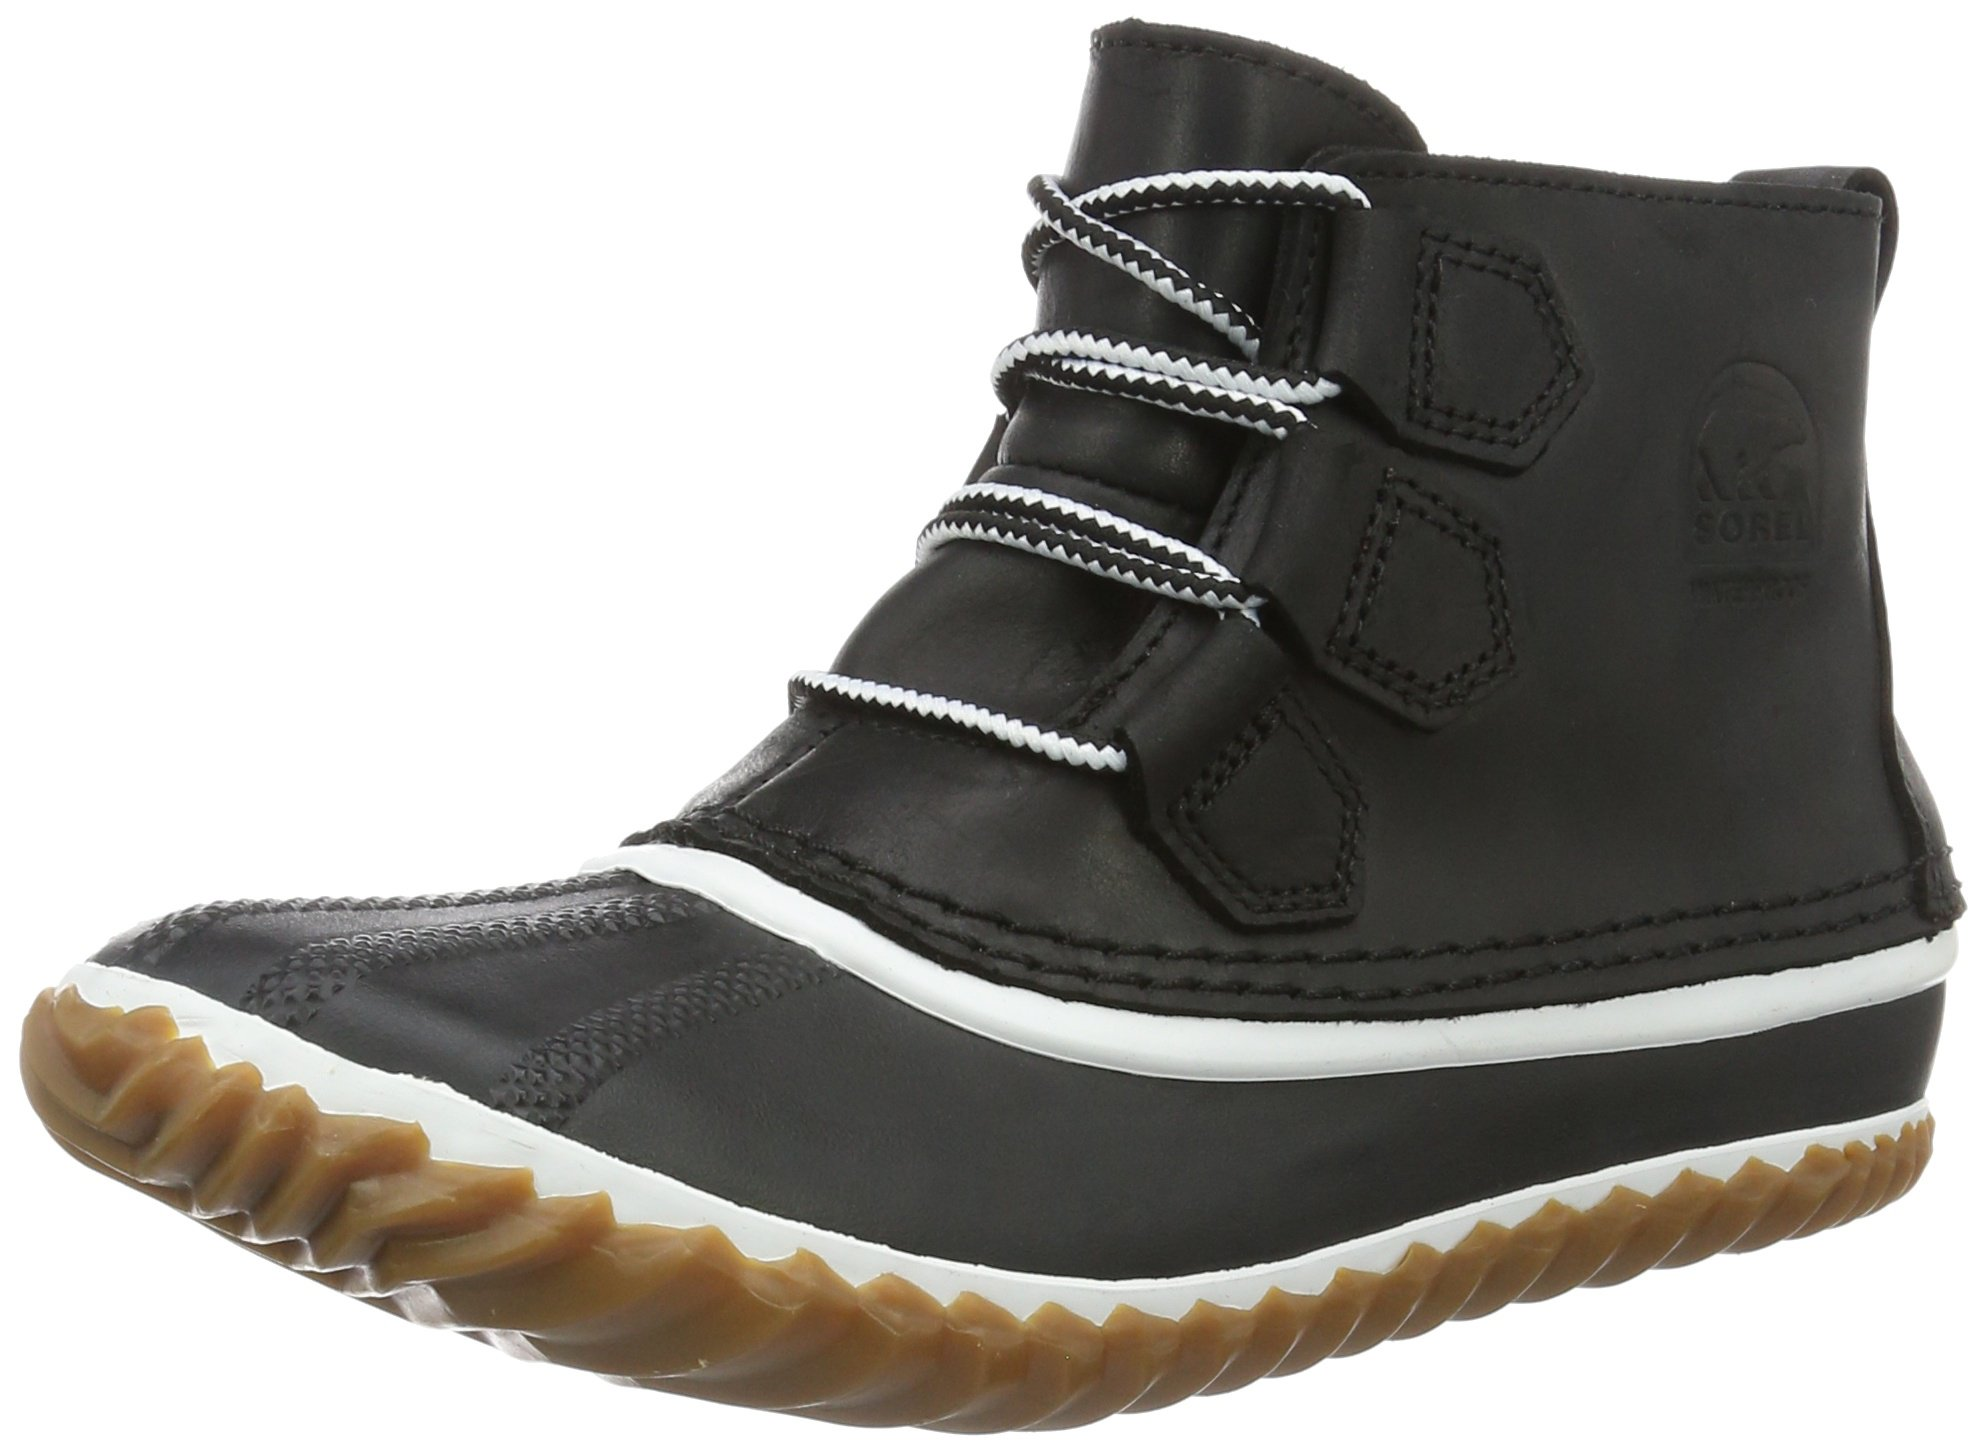 Sorel Women's Out N About Leather Snow Boot, Black,9 M US